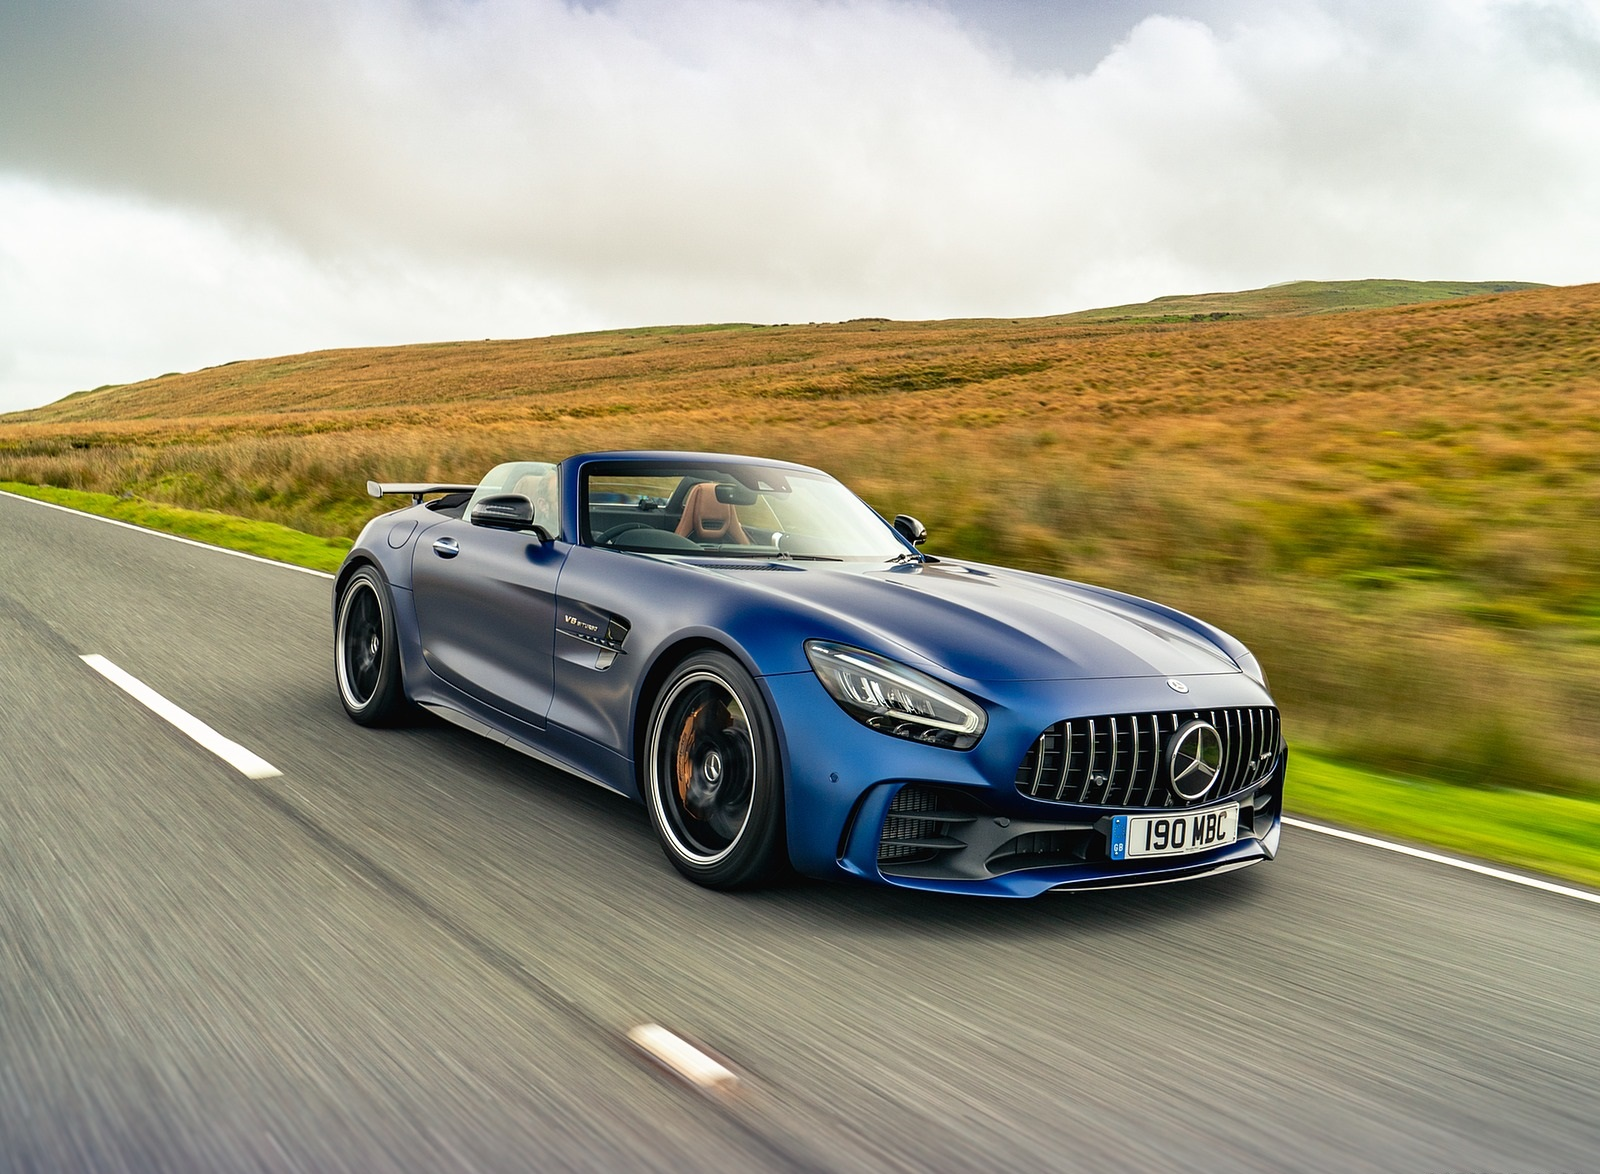 2020 Mercedes-AMG GT R Roadster (UK-Spec) Front Three-Quarter Wallpapers (1)